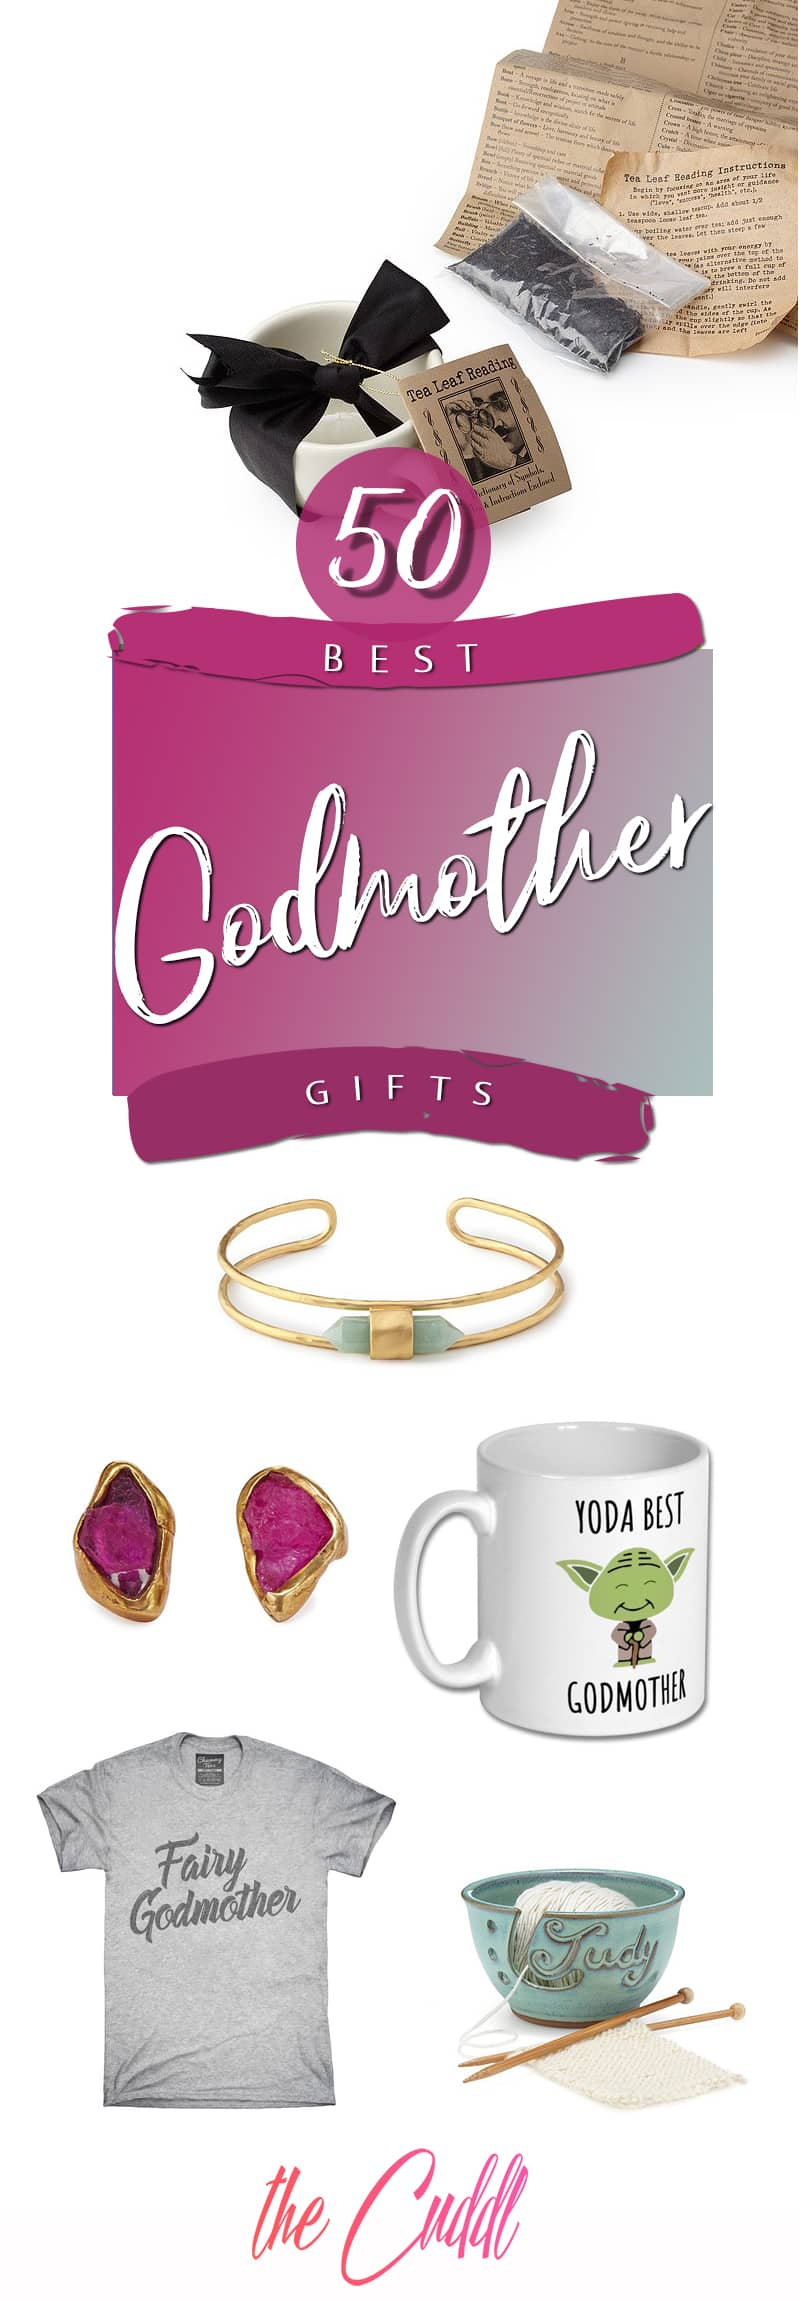 50 Top Presents for the Godmother in Your Life